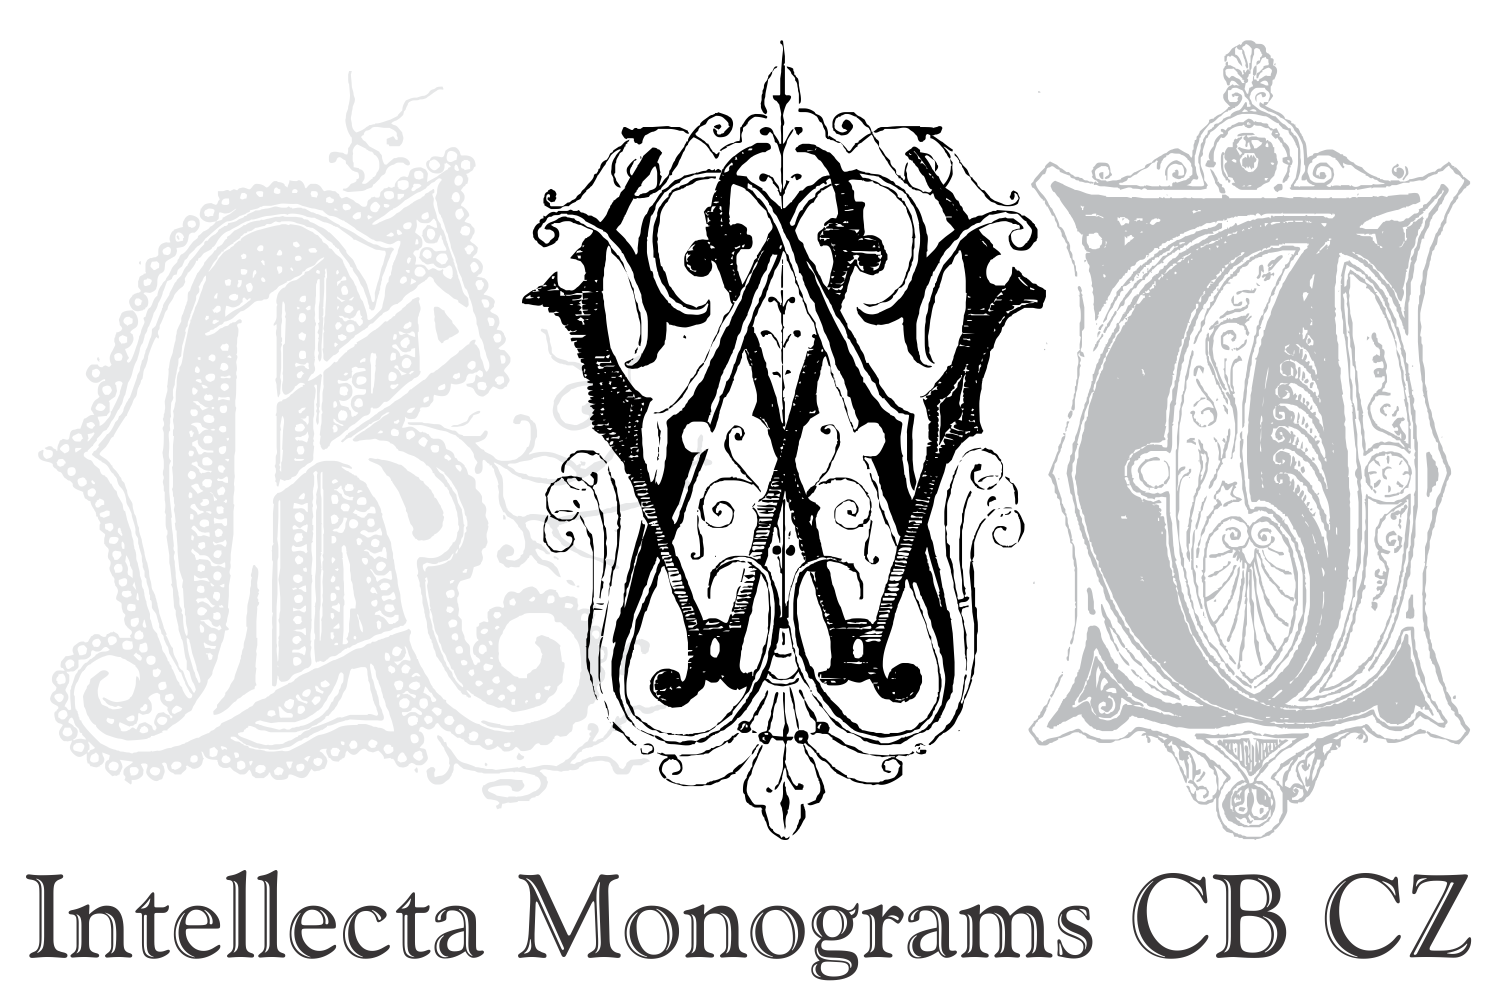 Intellecta Monograms CB CZ example image 4